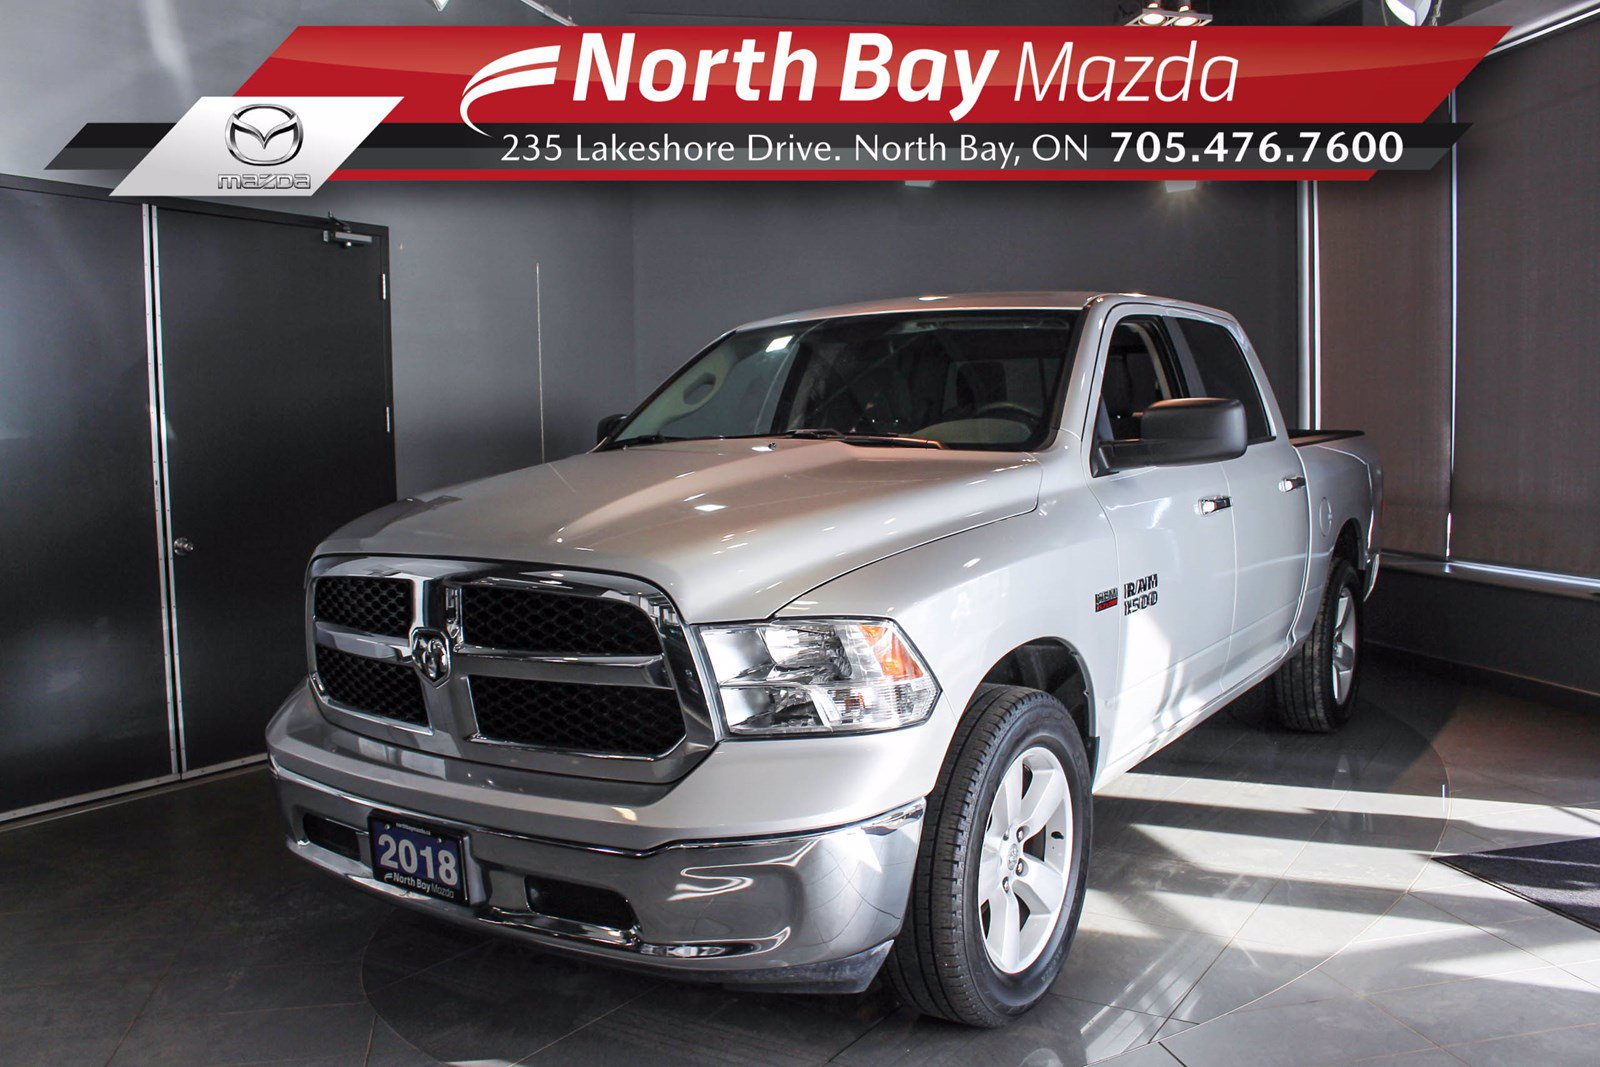 Pre-Owned 2018 Dodge RAM 1500 SLT - Test Drive Available by Appt!